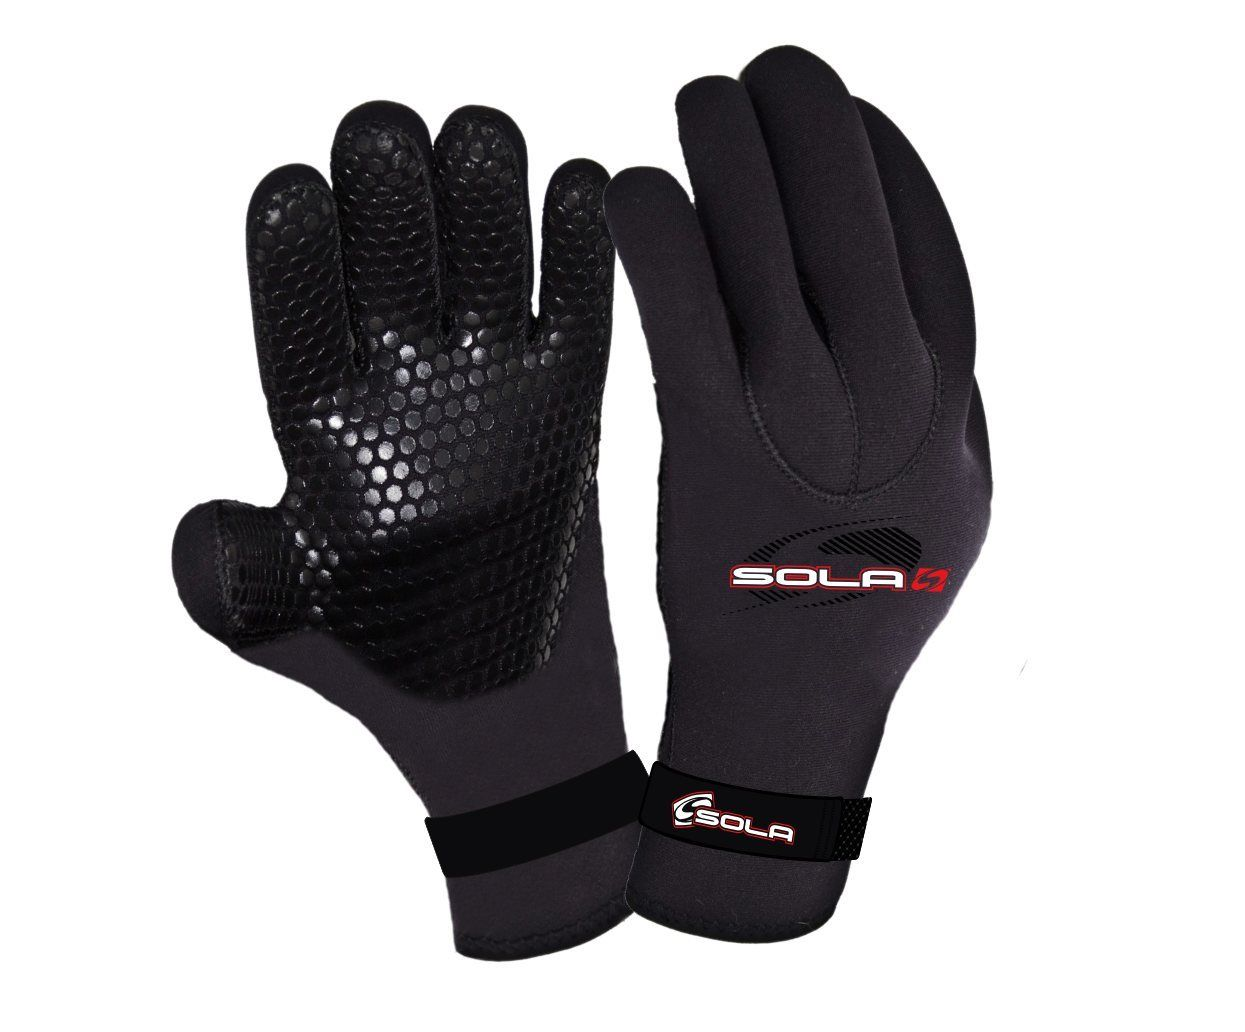 3MM TITANIUM D/L (DOUBLE LINED) GLOVE